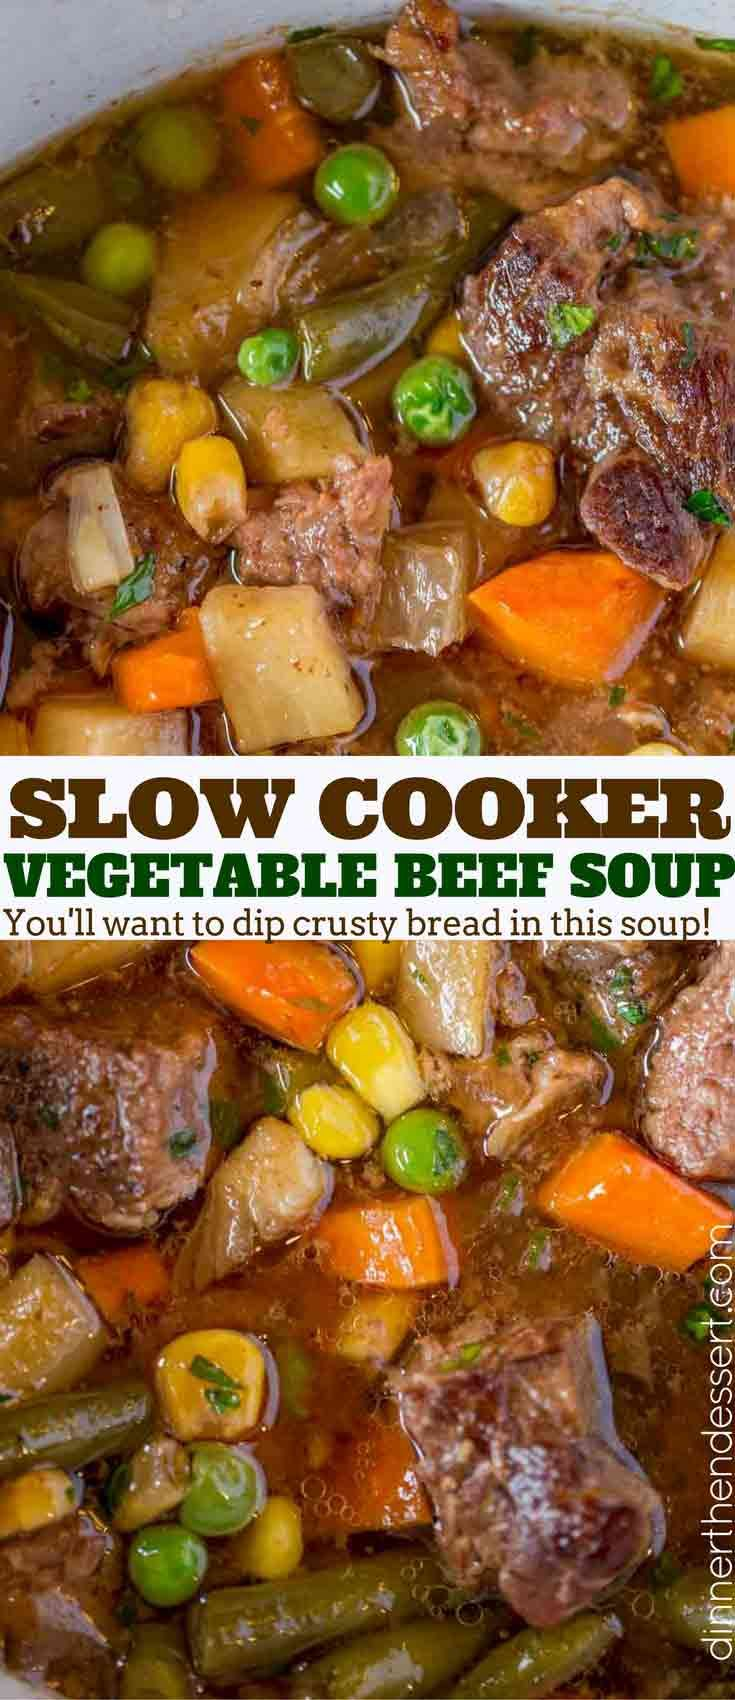 Slow Cooker Vegetable Beef Soup with is the most comforting, EASY soup you'll make. You'll want to dip crusty bread into the amazing flavors in this soup! #soup #beef #slowcooker #crockpot #comfortfood